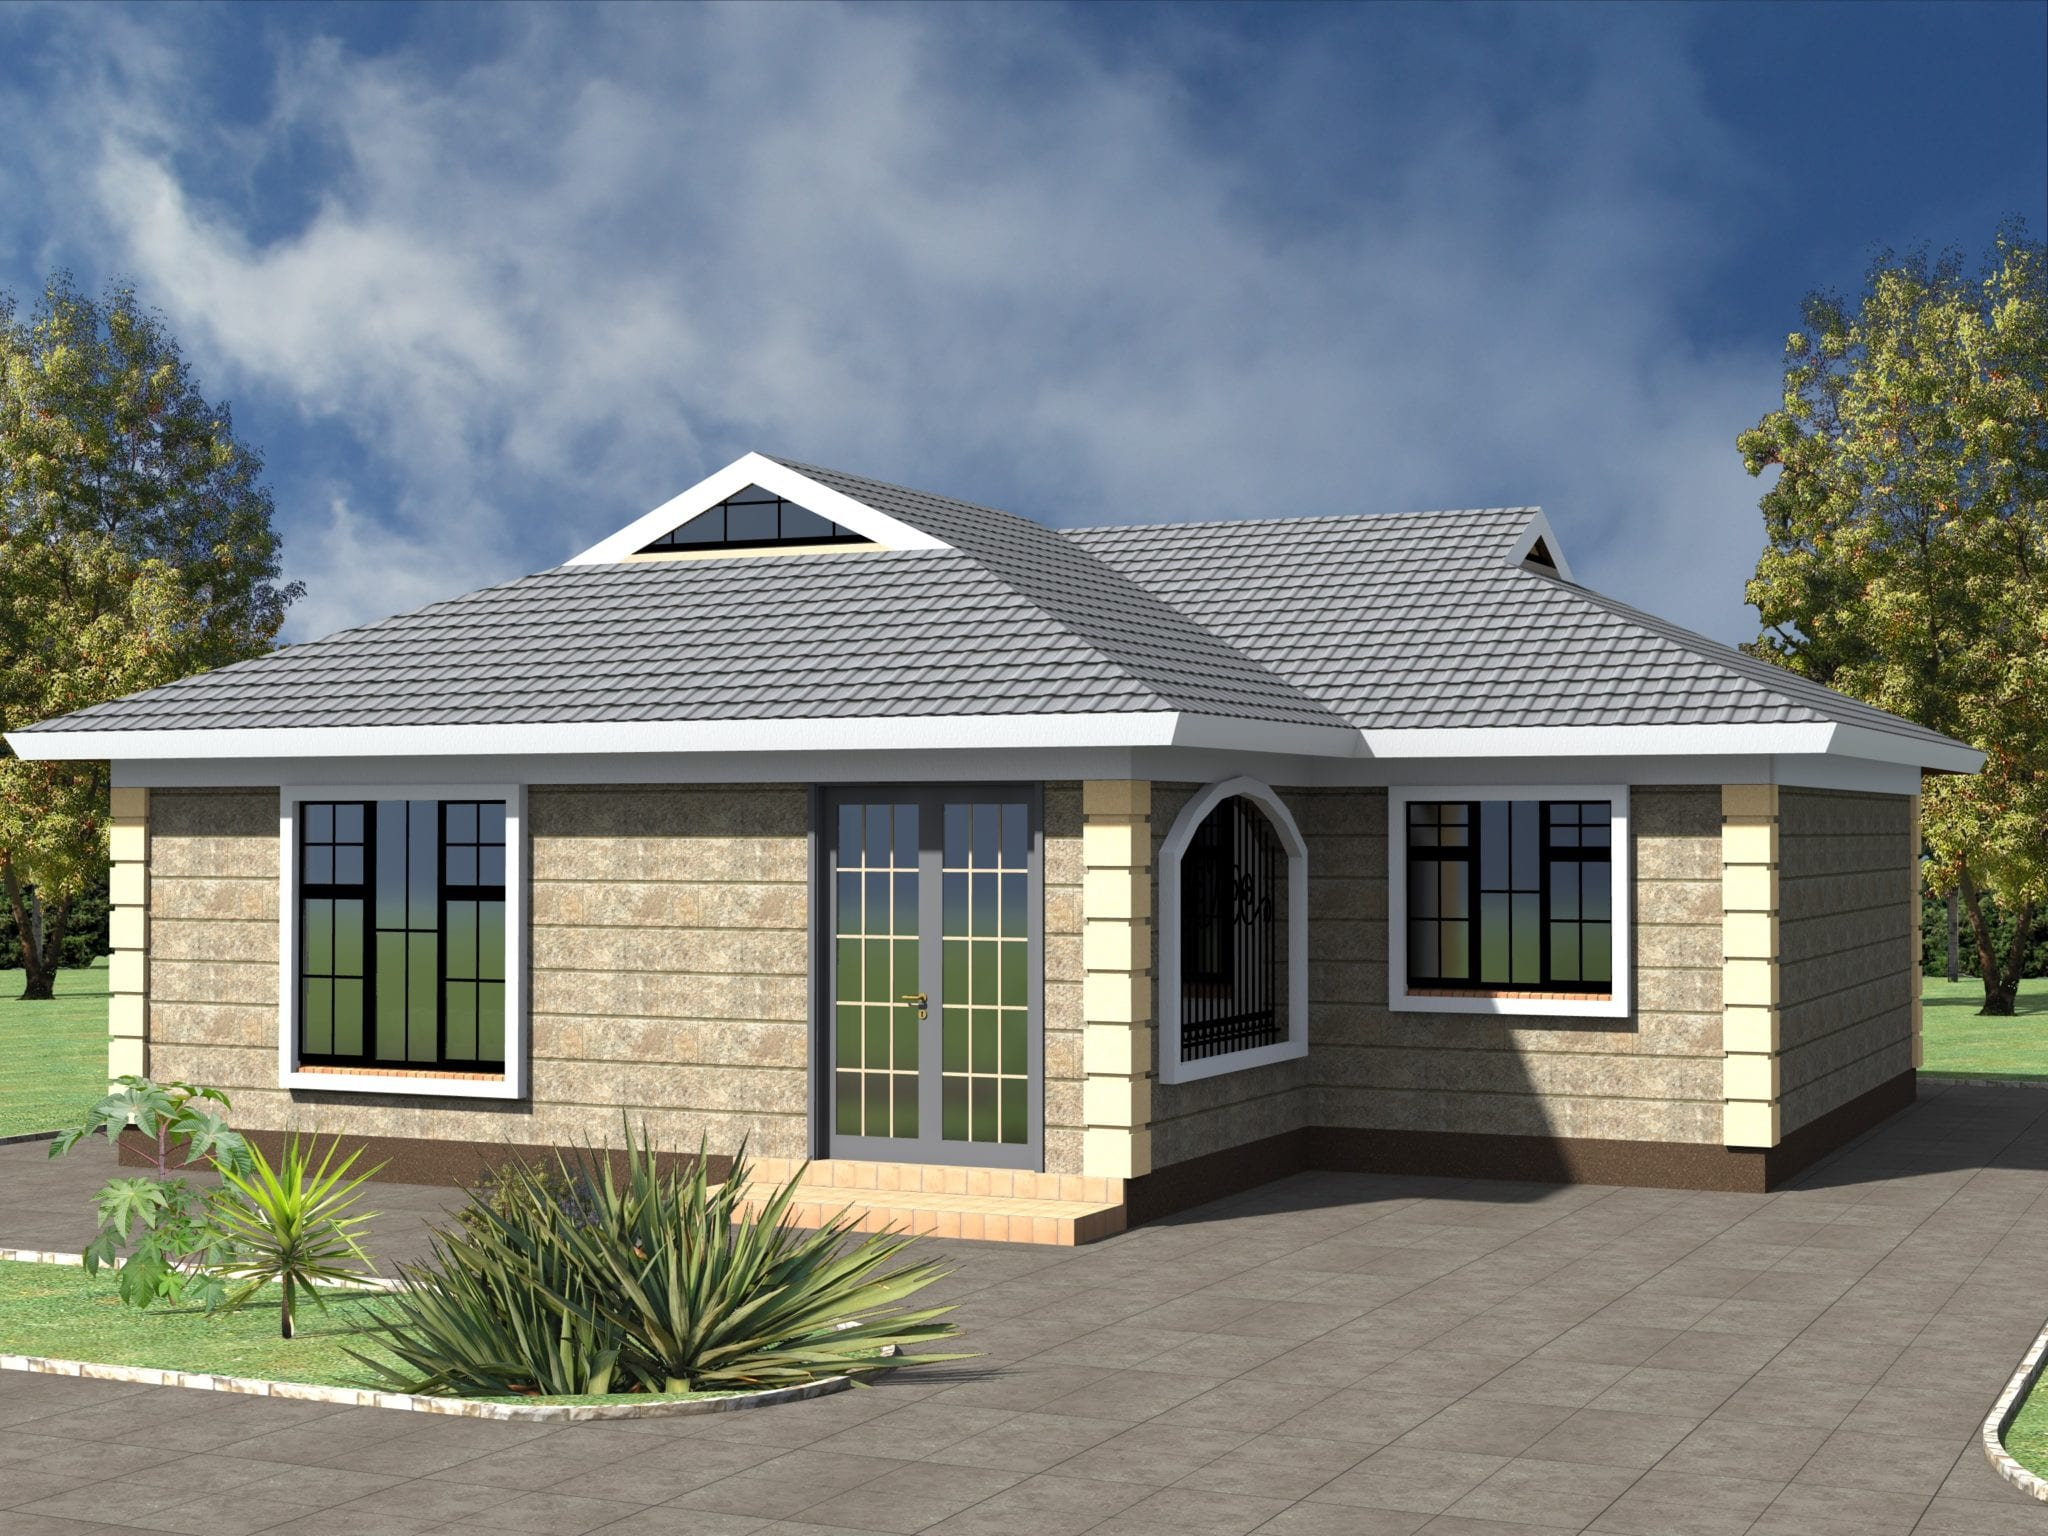 3 Bedroom house plan design in kenya | HPD Consult